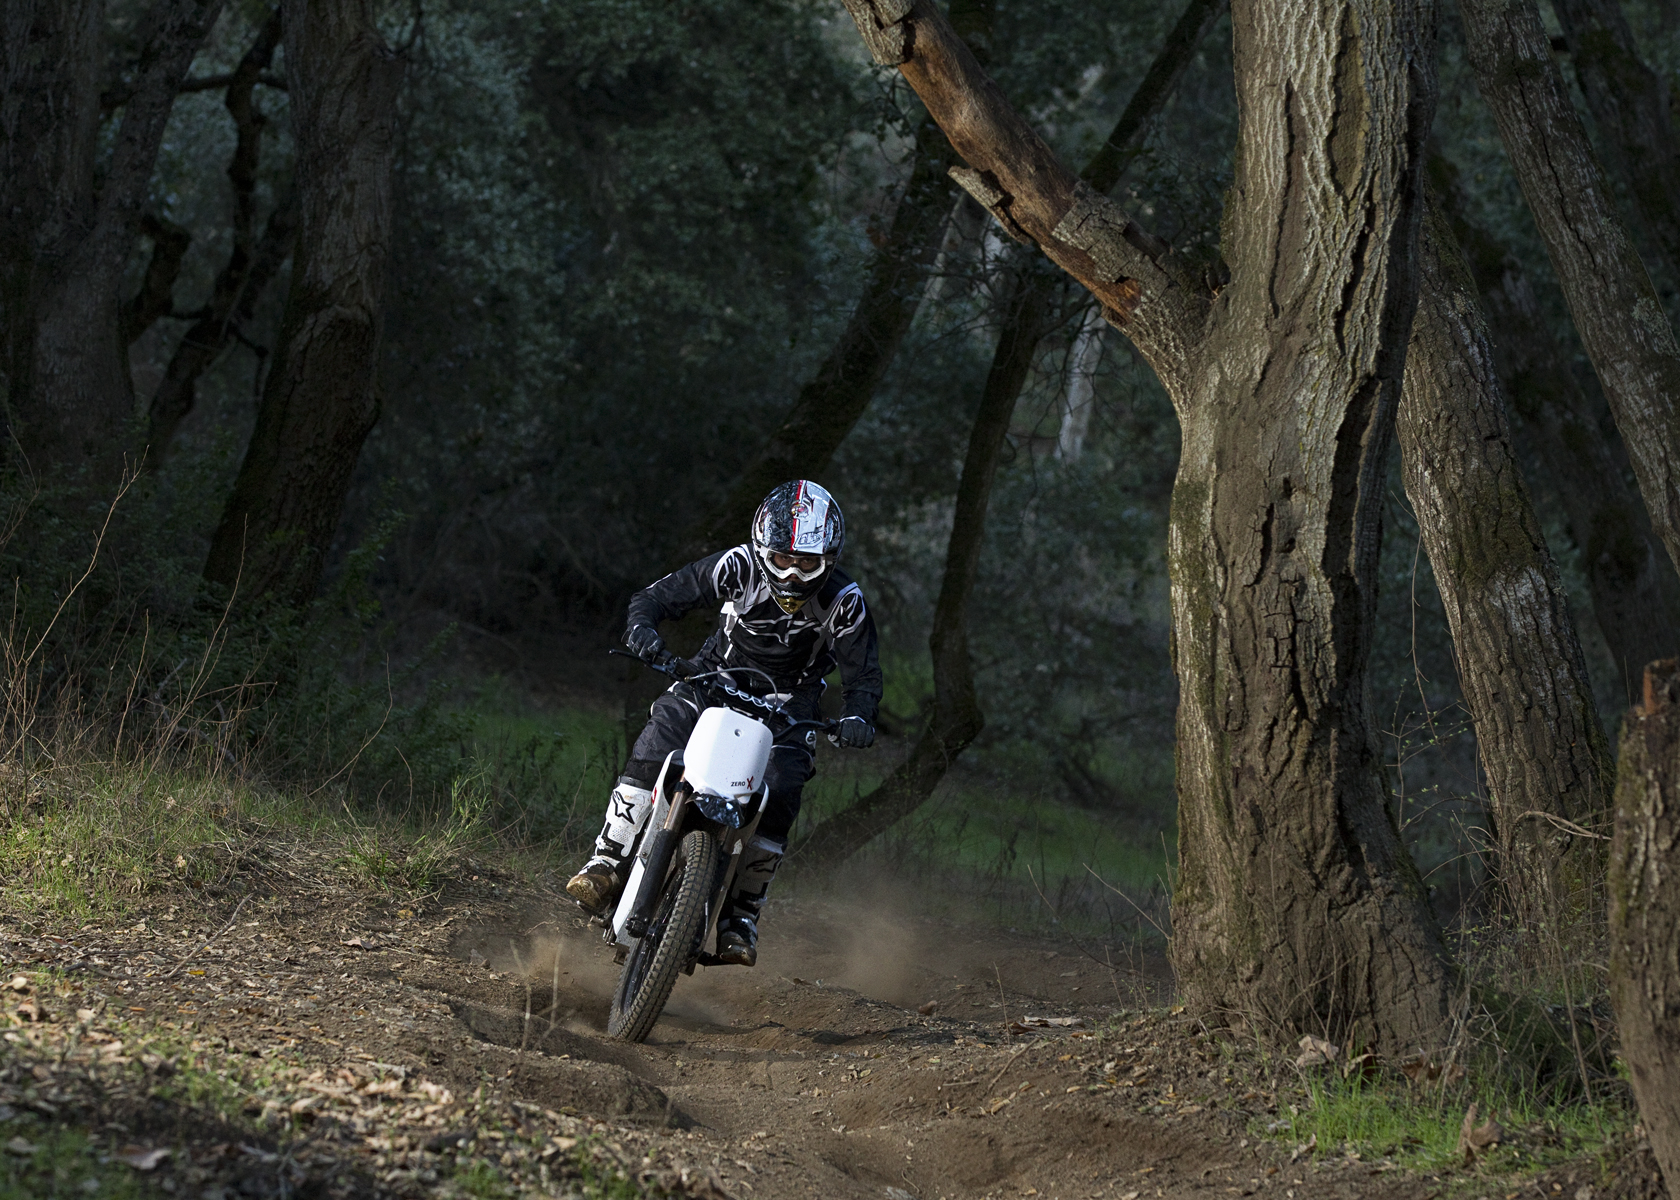 '.2011 Zero X Electric Motorcycle: Charging Up a Wooded Trail.'